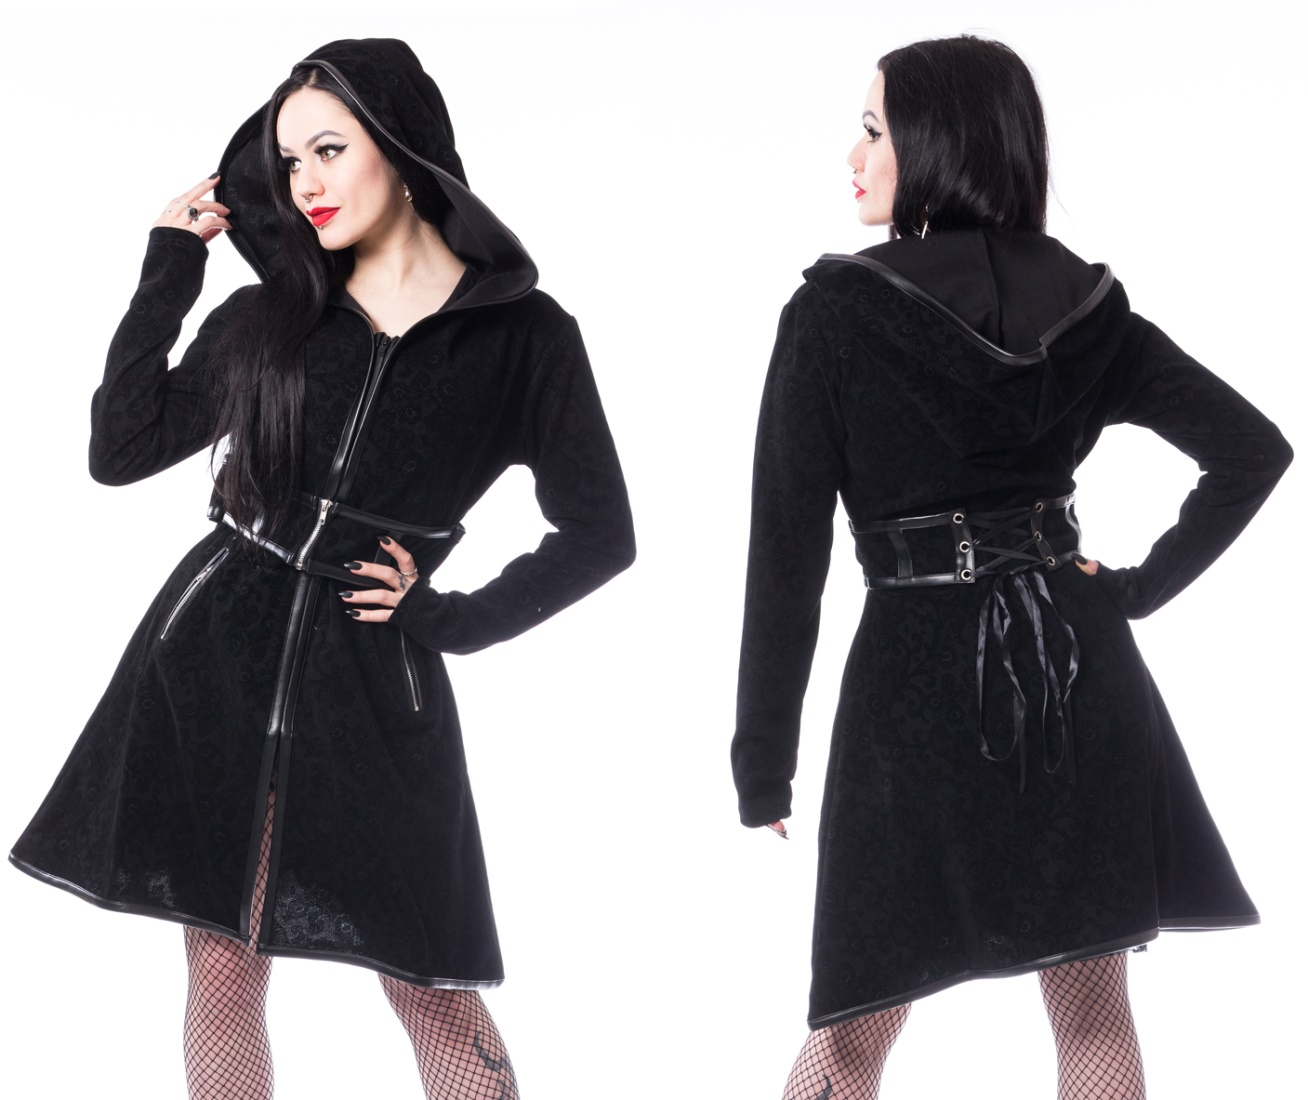 Damenmantel mit Taillenkorsage Dark Sense Coat Poizen Industries Poizen Industries bei Gothic Onlineshop the